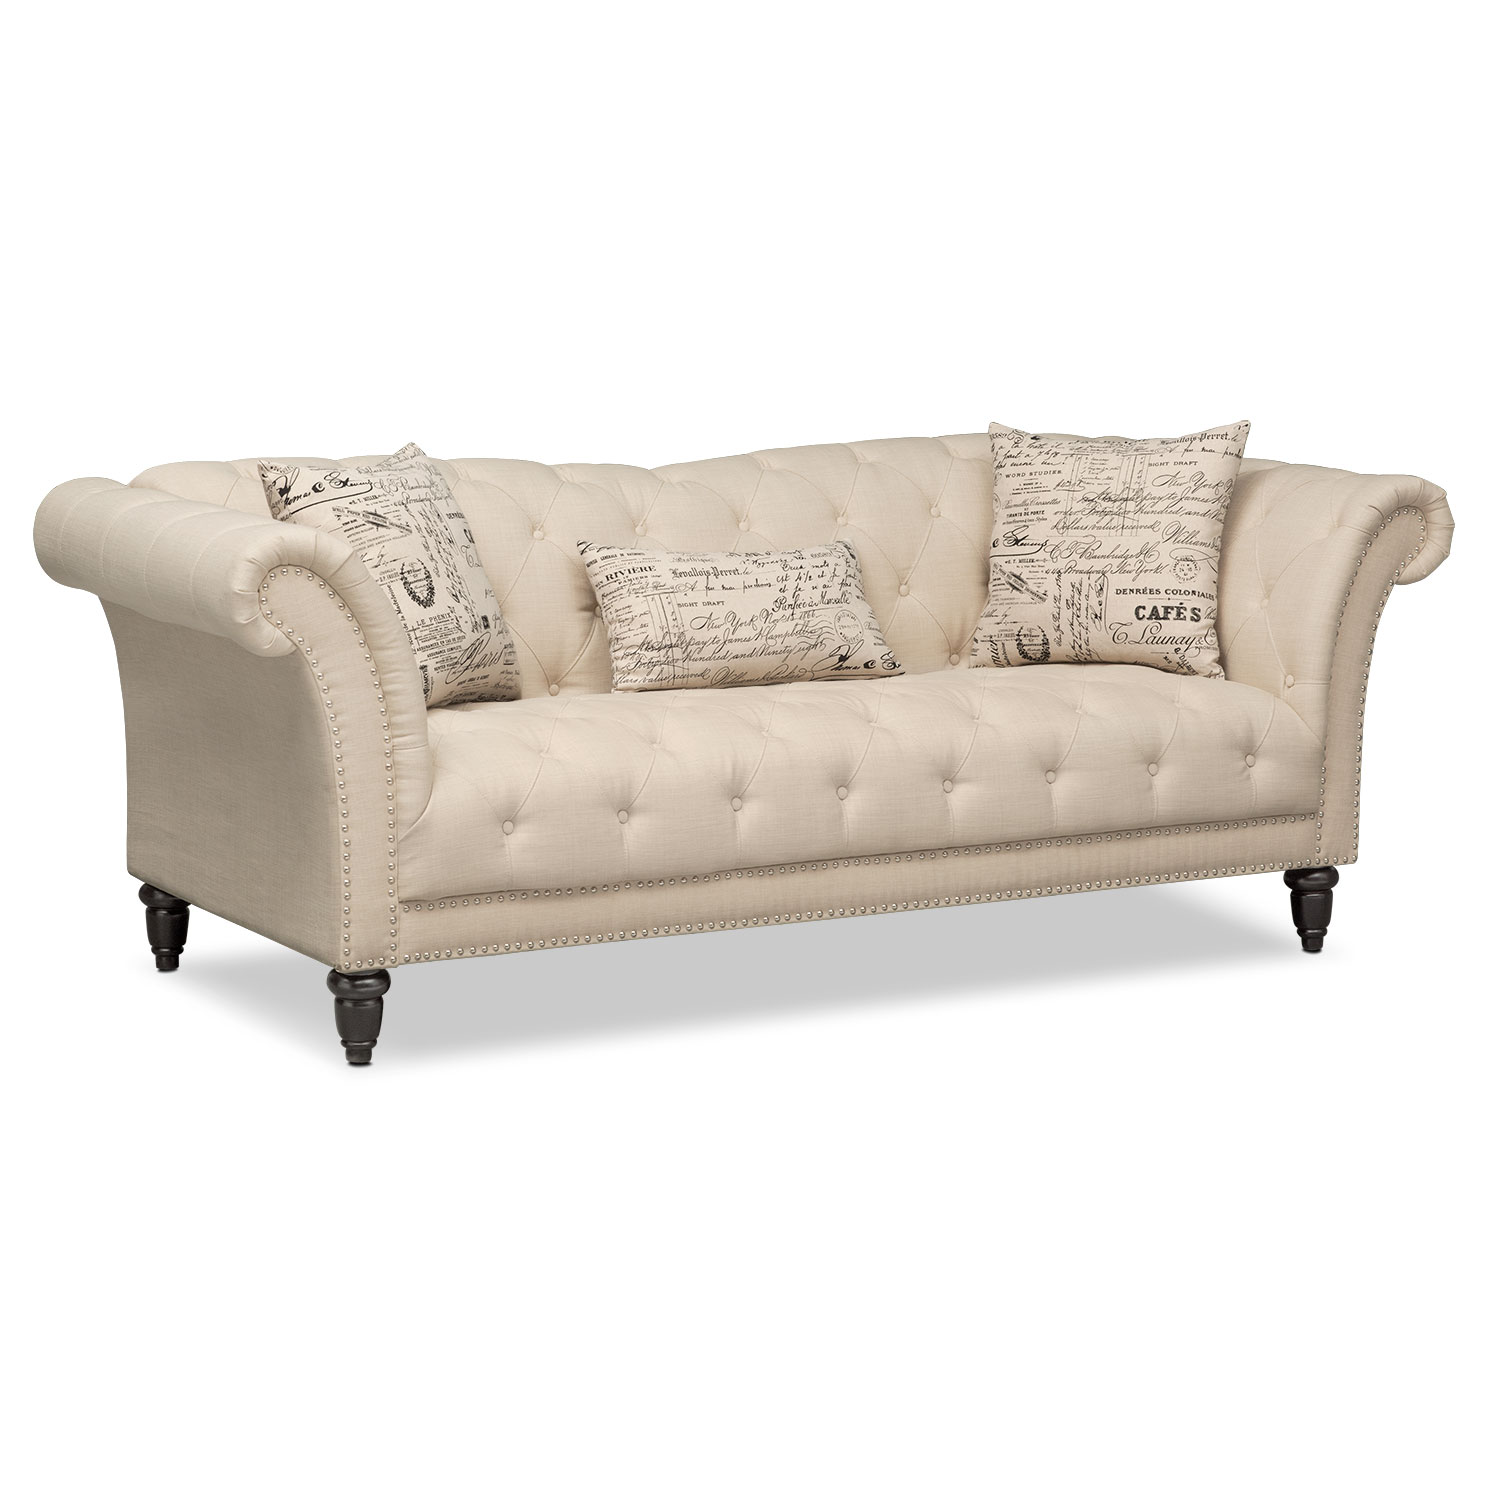 Couches And Sofas Marisol Sofa Beige American Signature Furniture